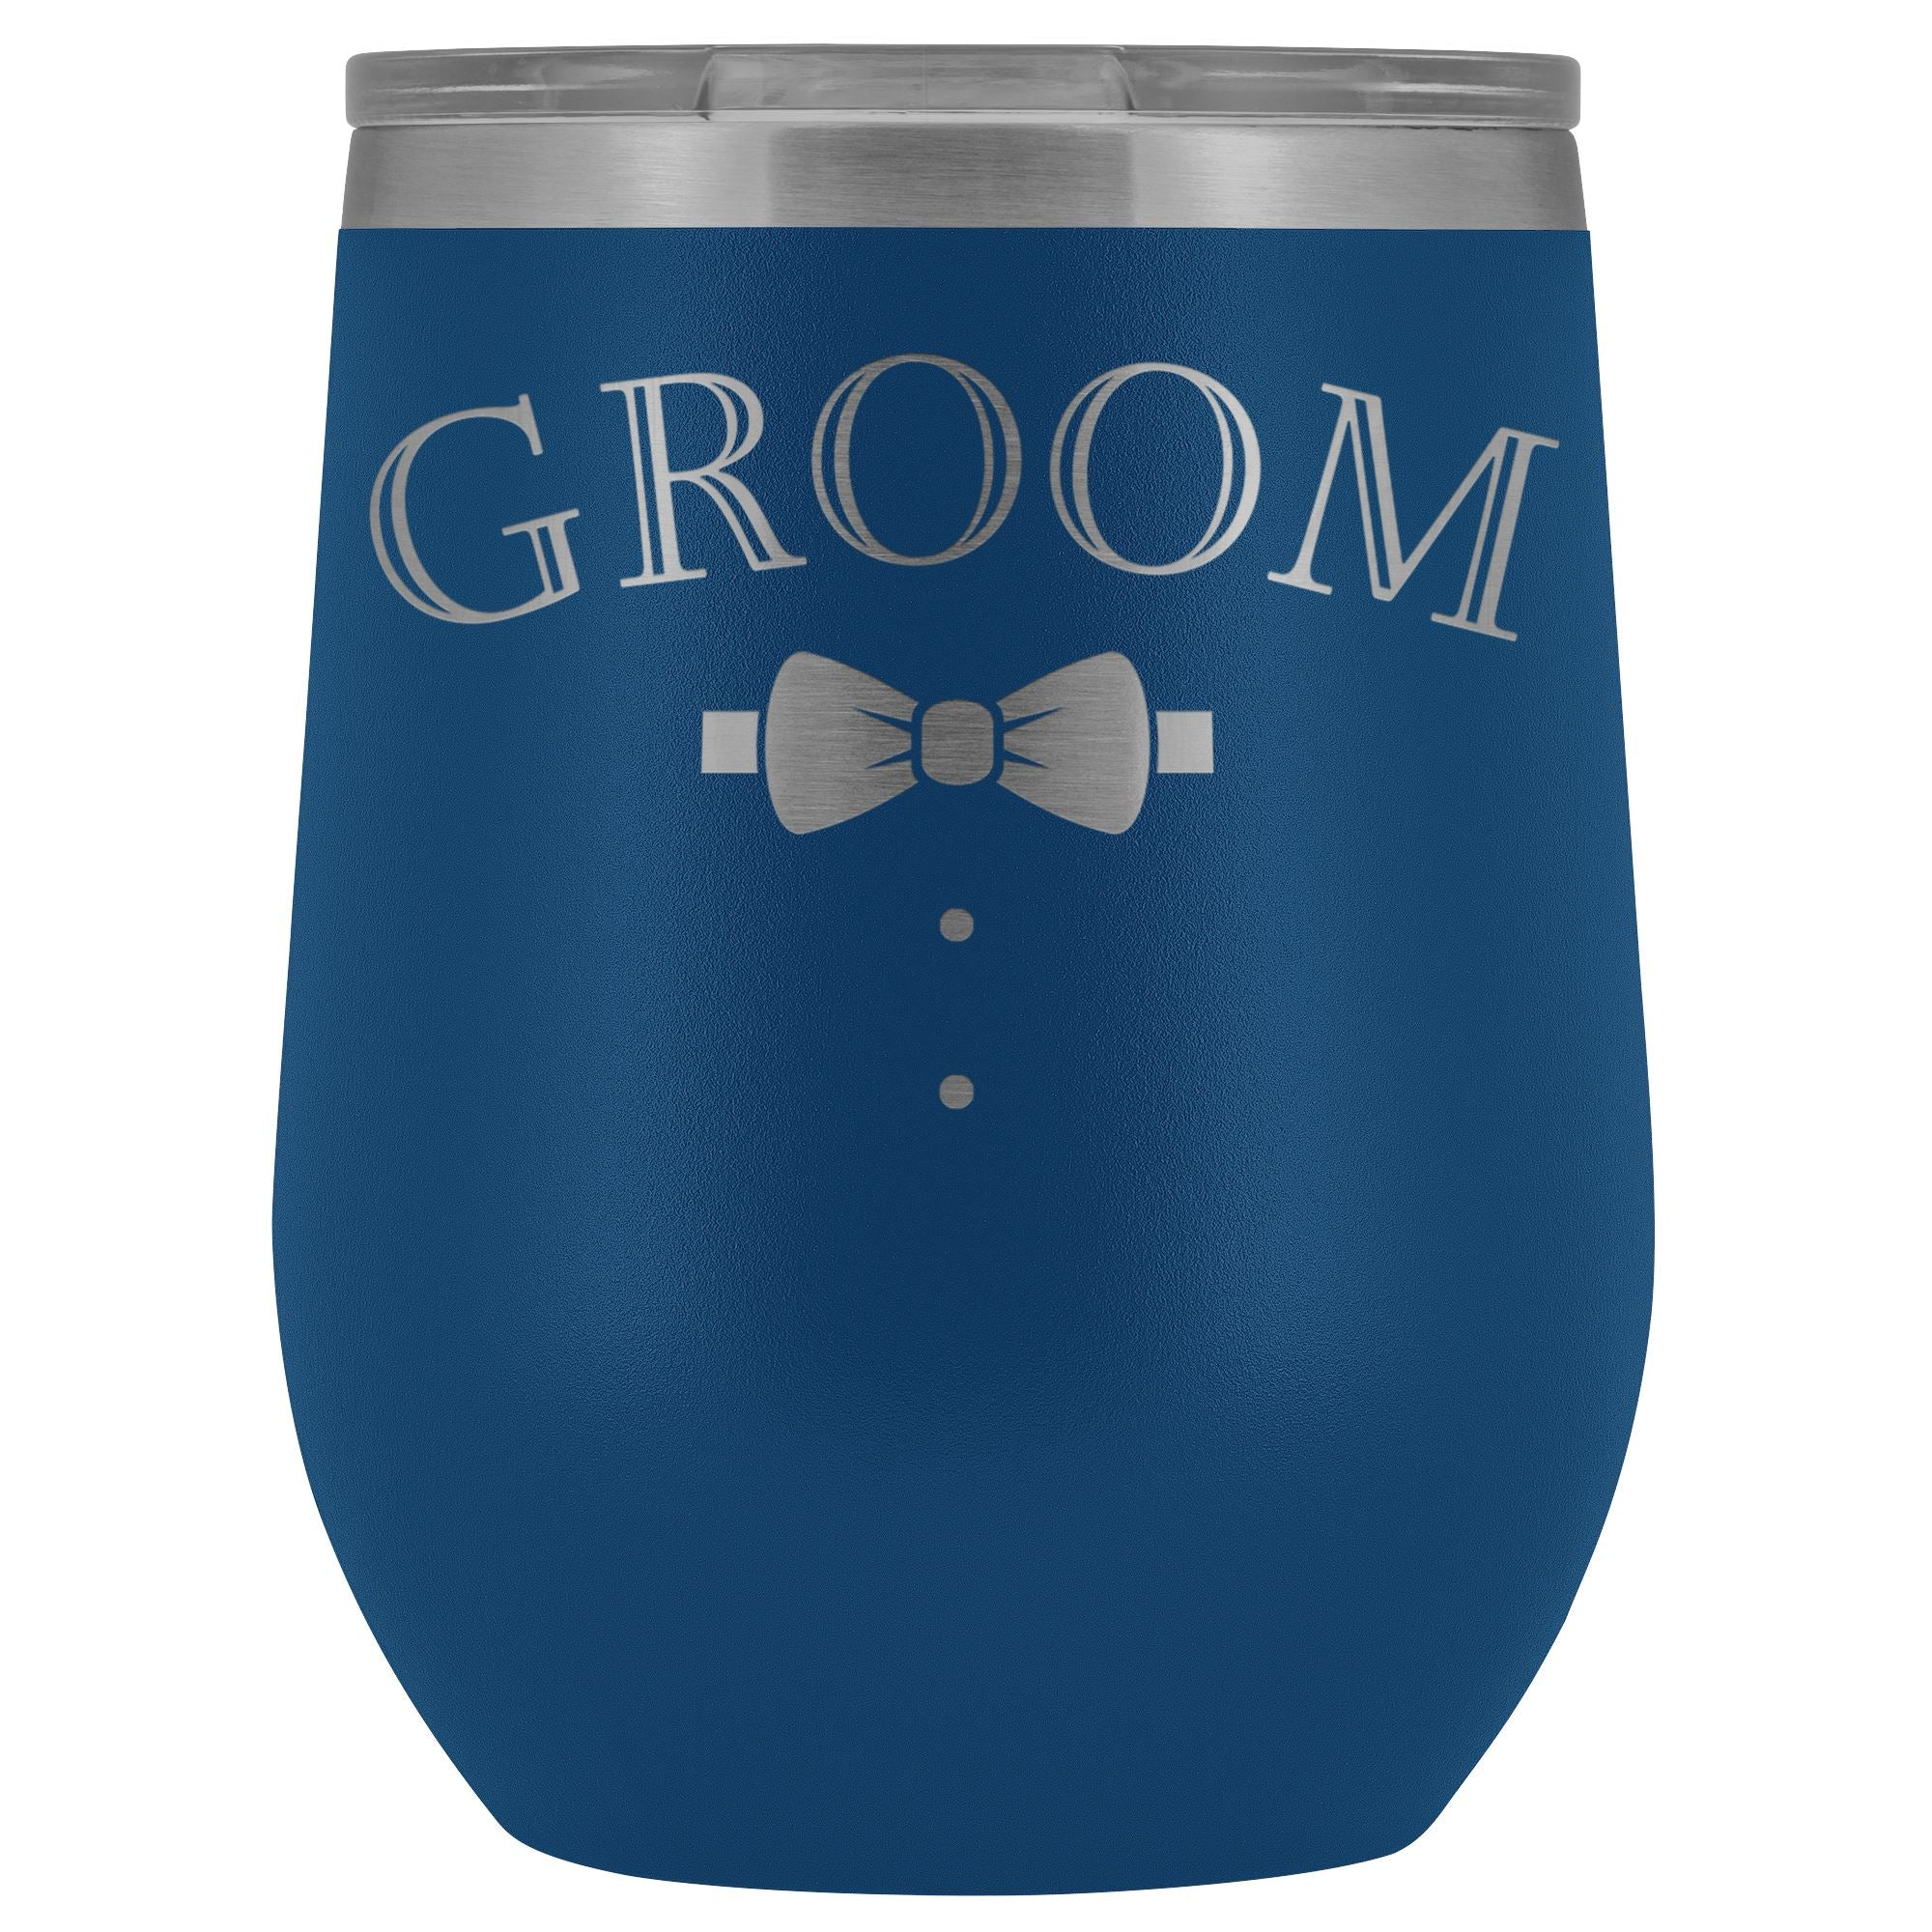 For The Groom • Engraved 12oz. Wine Tumbler Wine Tumbler teelaunch Blue